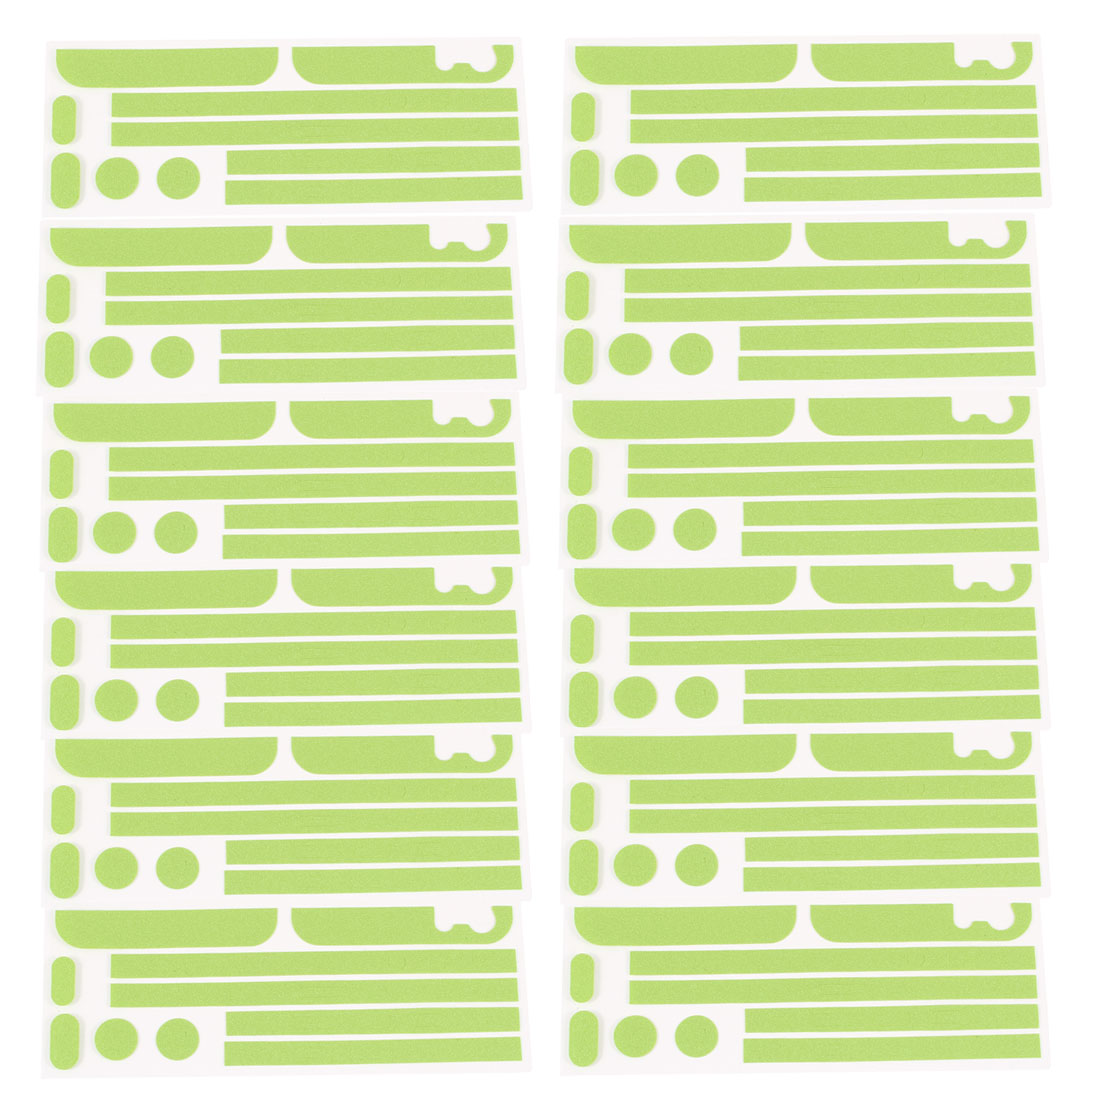 12 Pcs Green Front Back Side Wrap Decal Skin Edge Sticker Set for iPhone 5 5G 5S